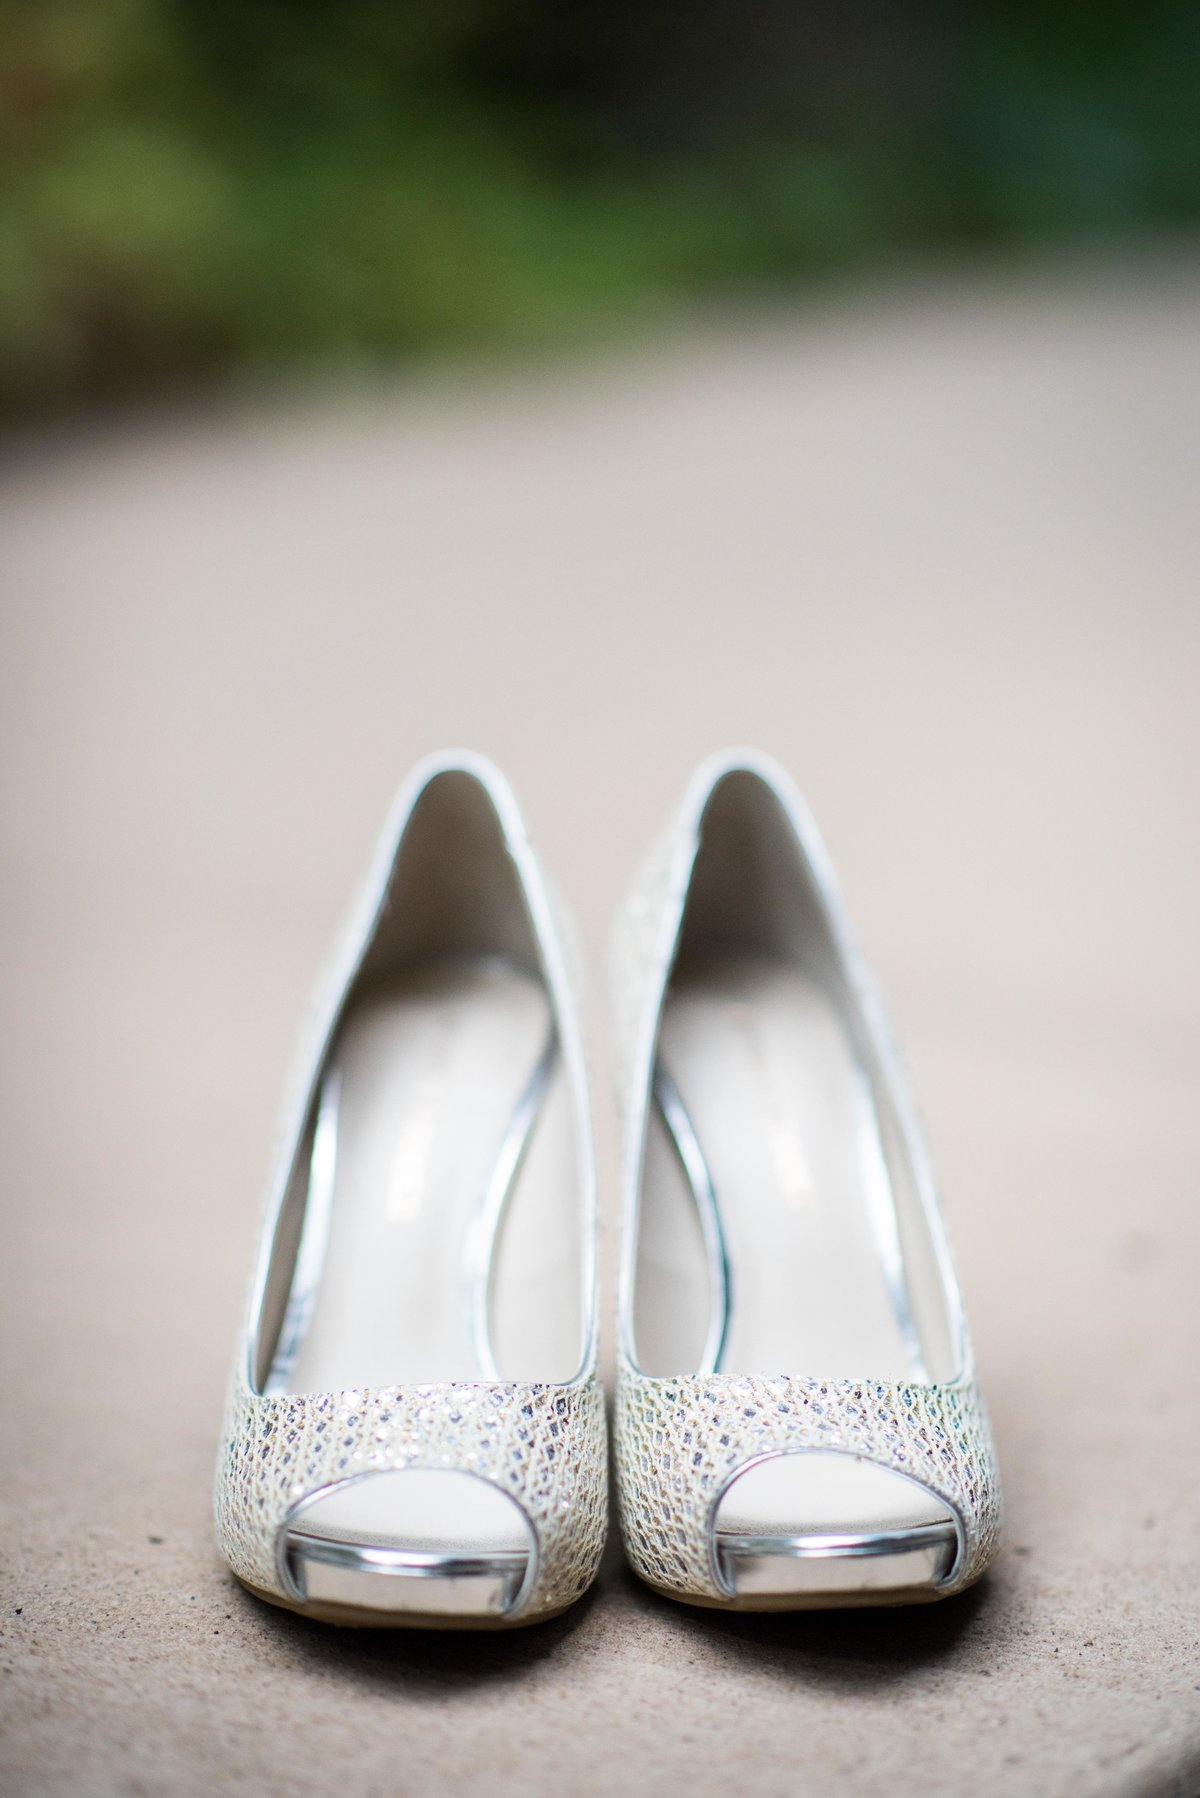 Bridal shoes, Utah wedding.